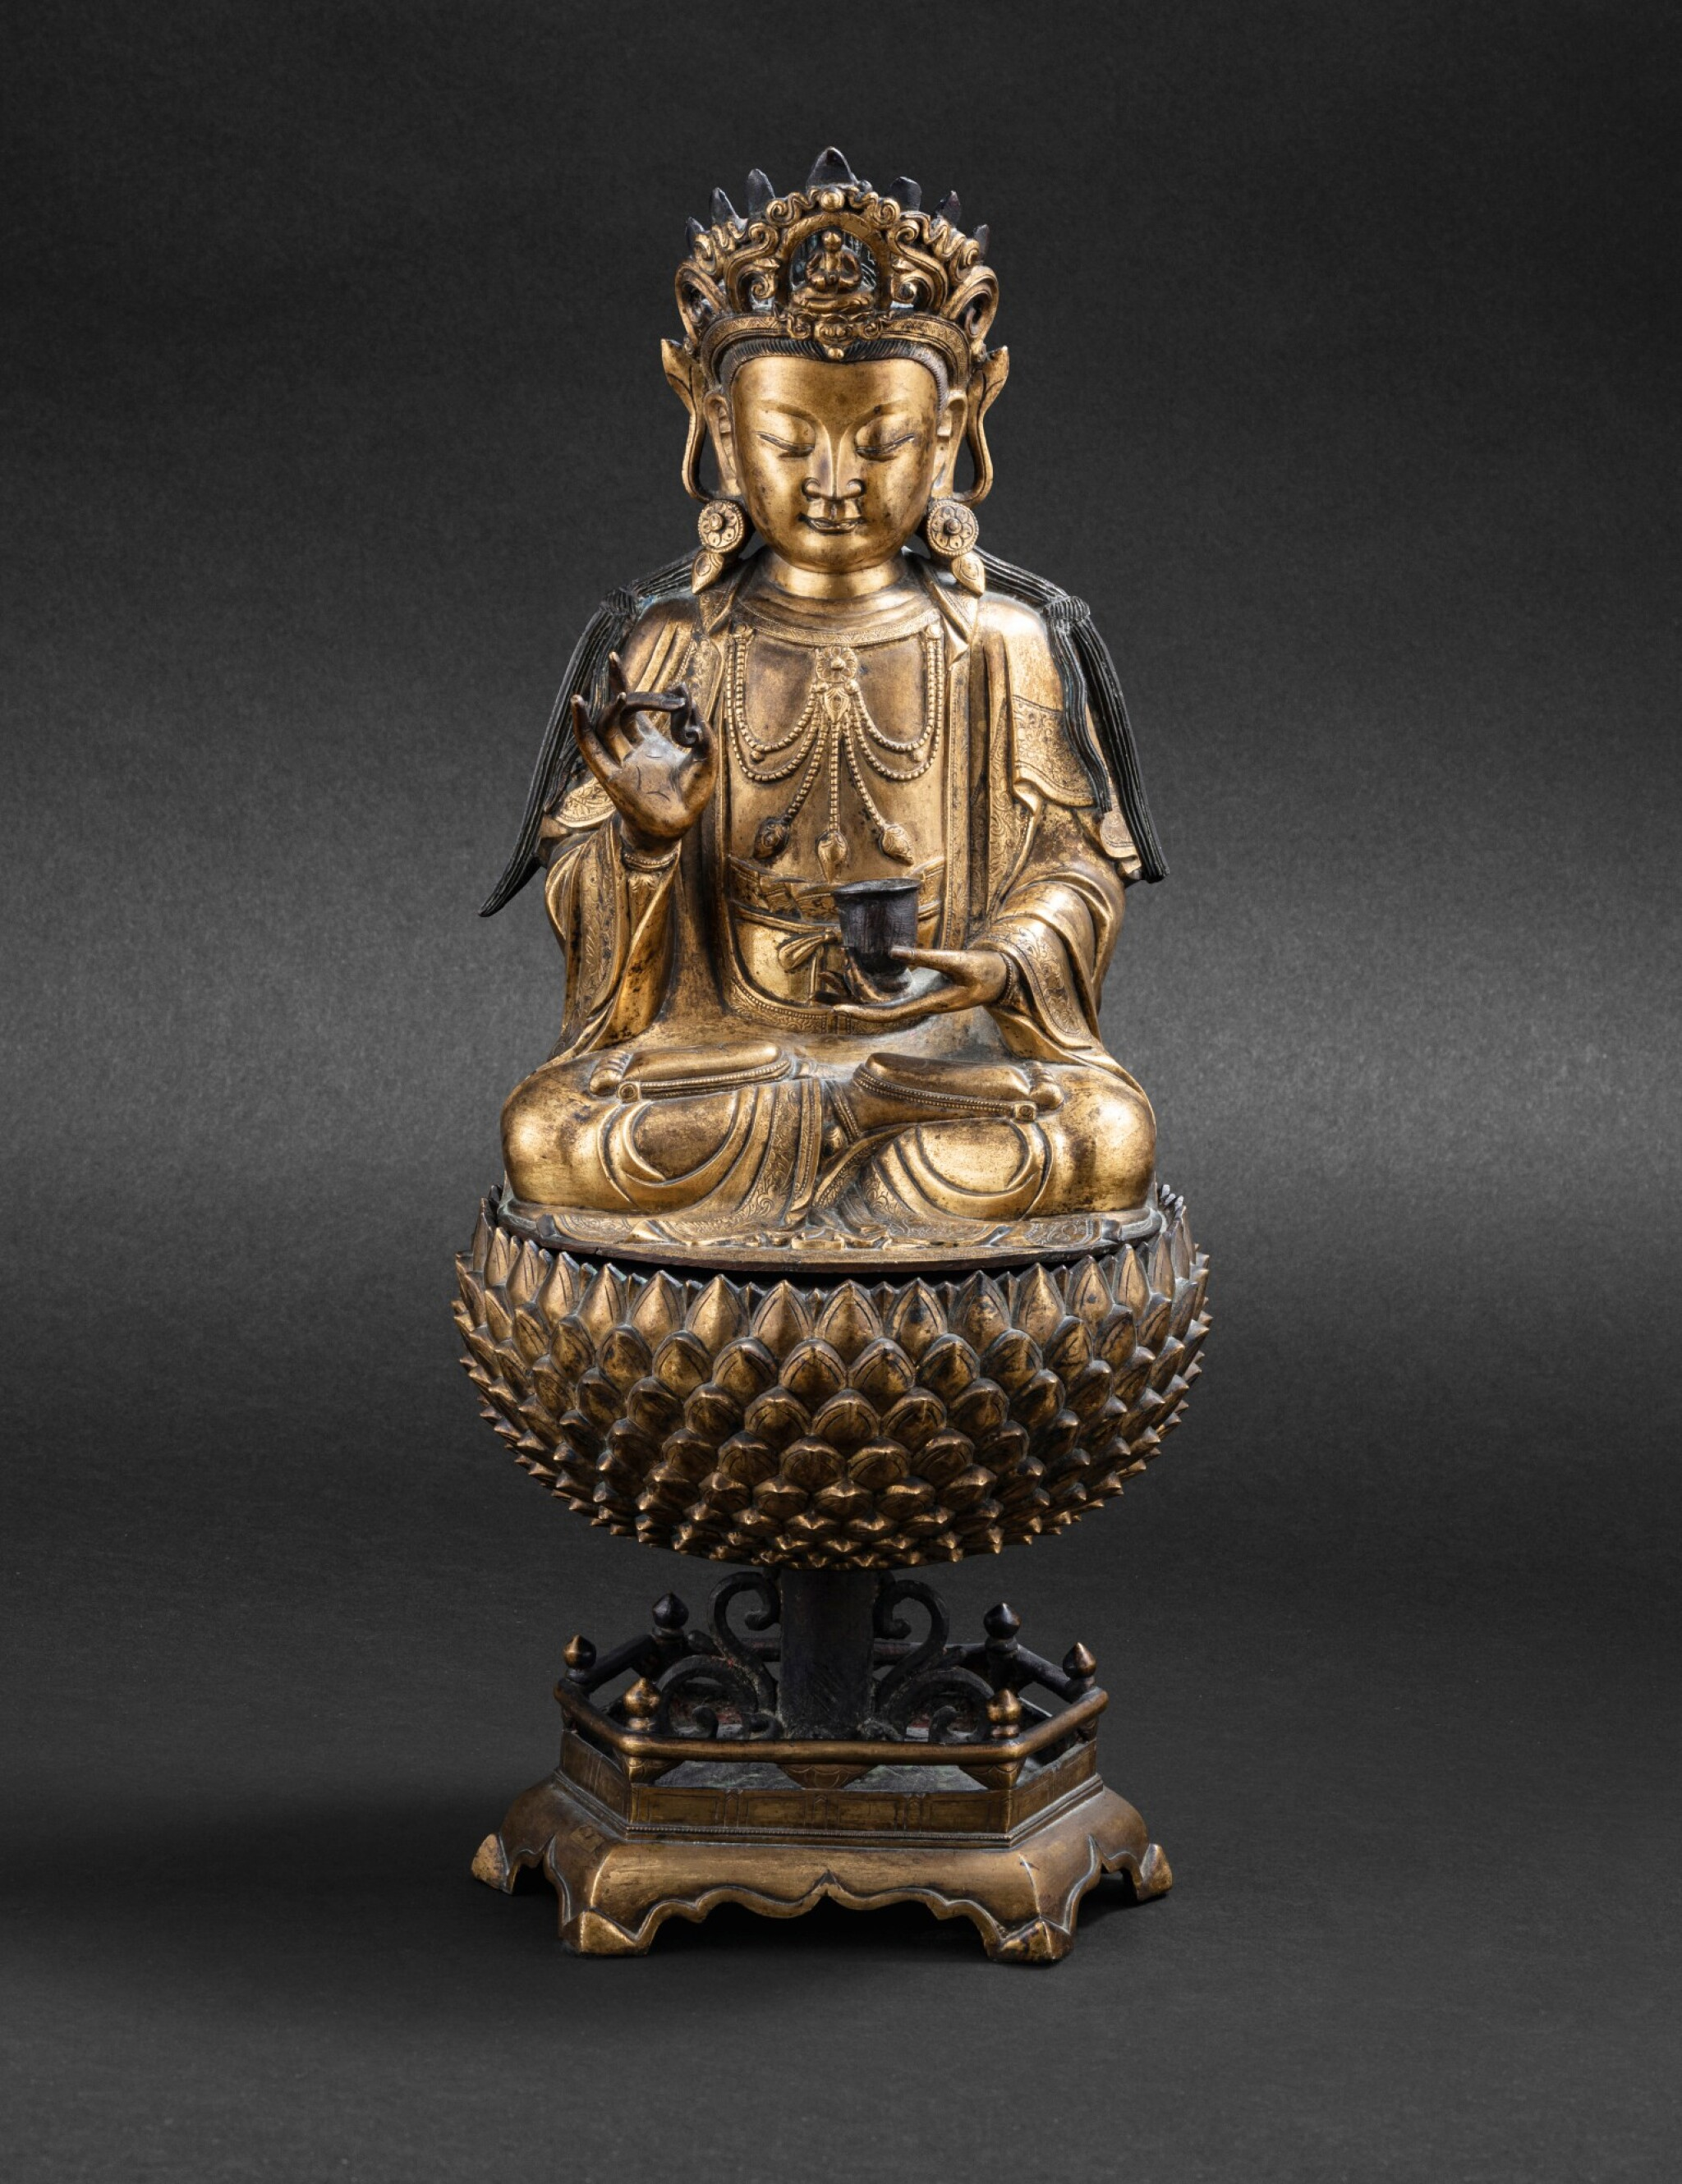 View 1 of Lot 39. Statue de Guanyin en bronze doré Dynastie Ming, XVIIE siècle | 明十七世紀 鎏金銅觀音菩薩坐像 | A large gilt-bronze figure of Guanyin on a lotus base, Ming Dynasty, 17th century.